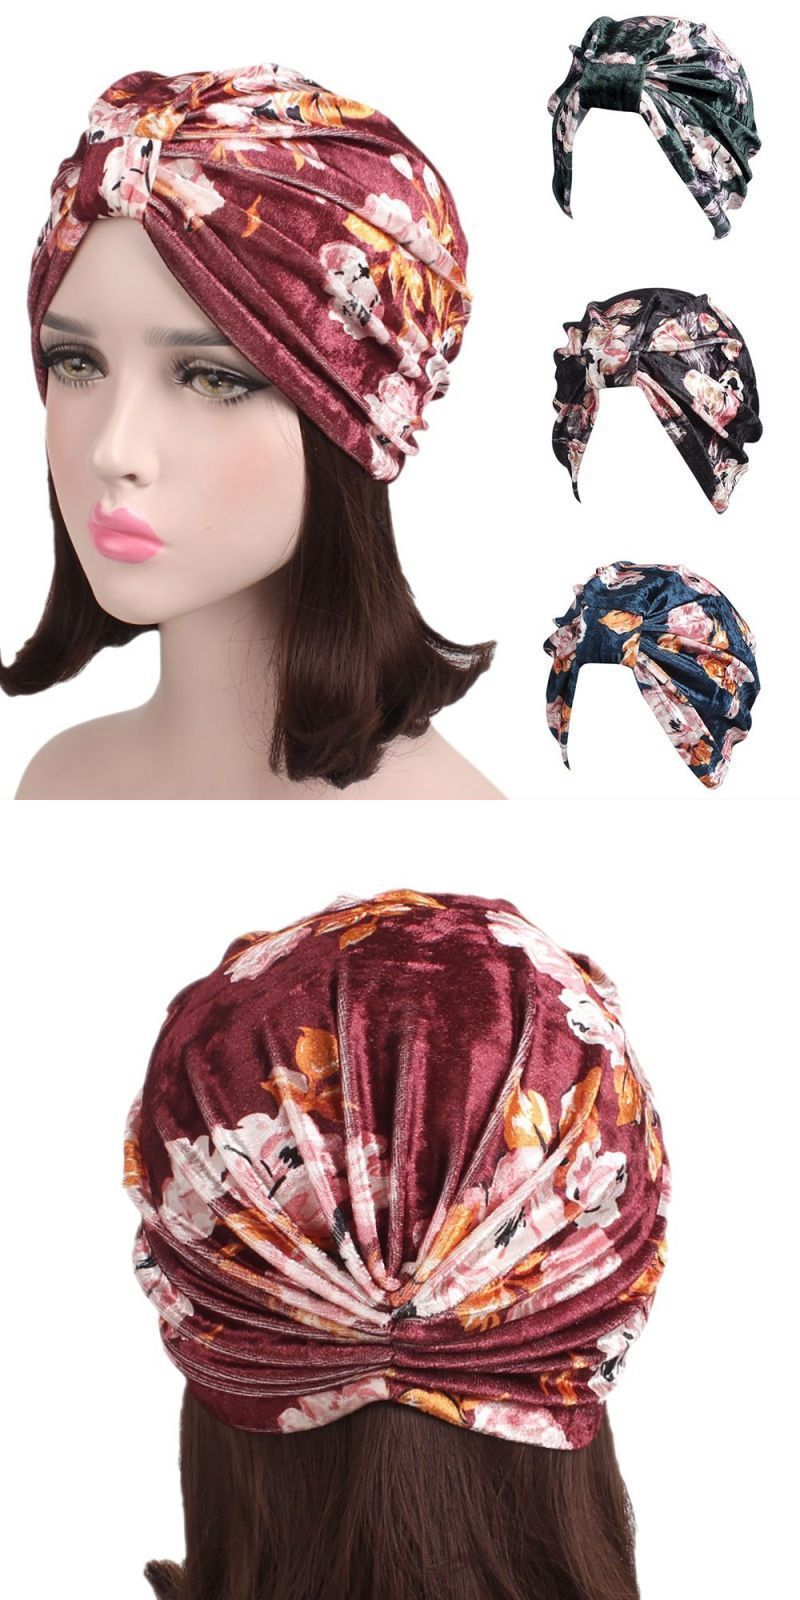 d71cacfdab2 Women caps fashion muslim ladies stretch velvet floral cancer chemo hat  comfortable beanie scarf turban head wrap cap  cotton